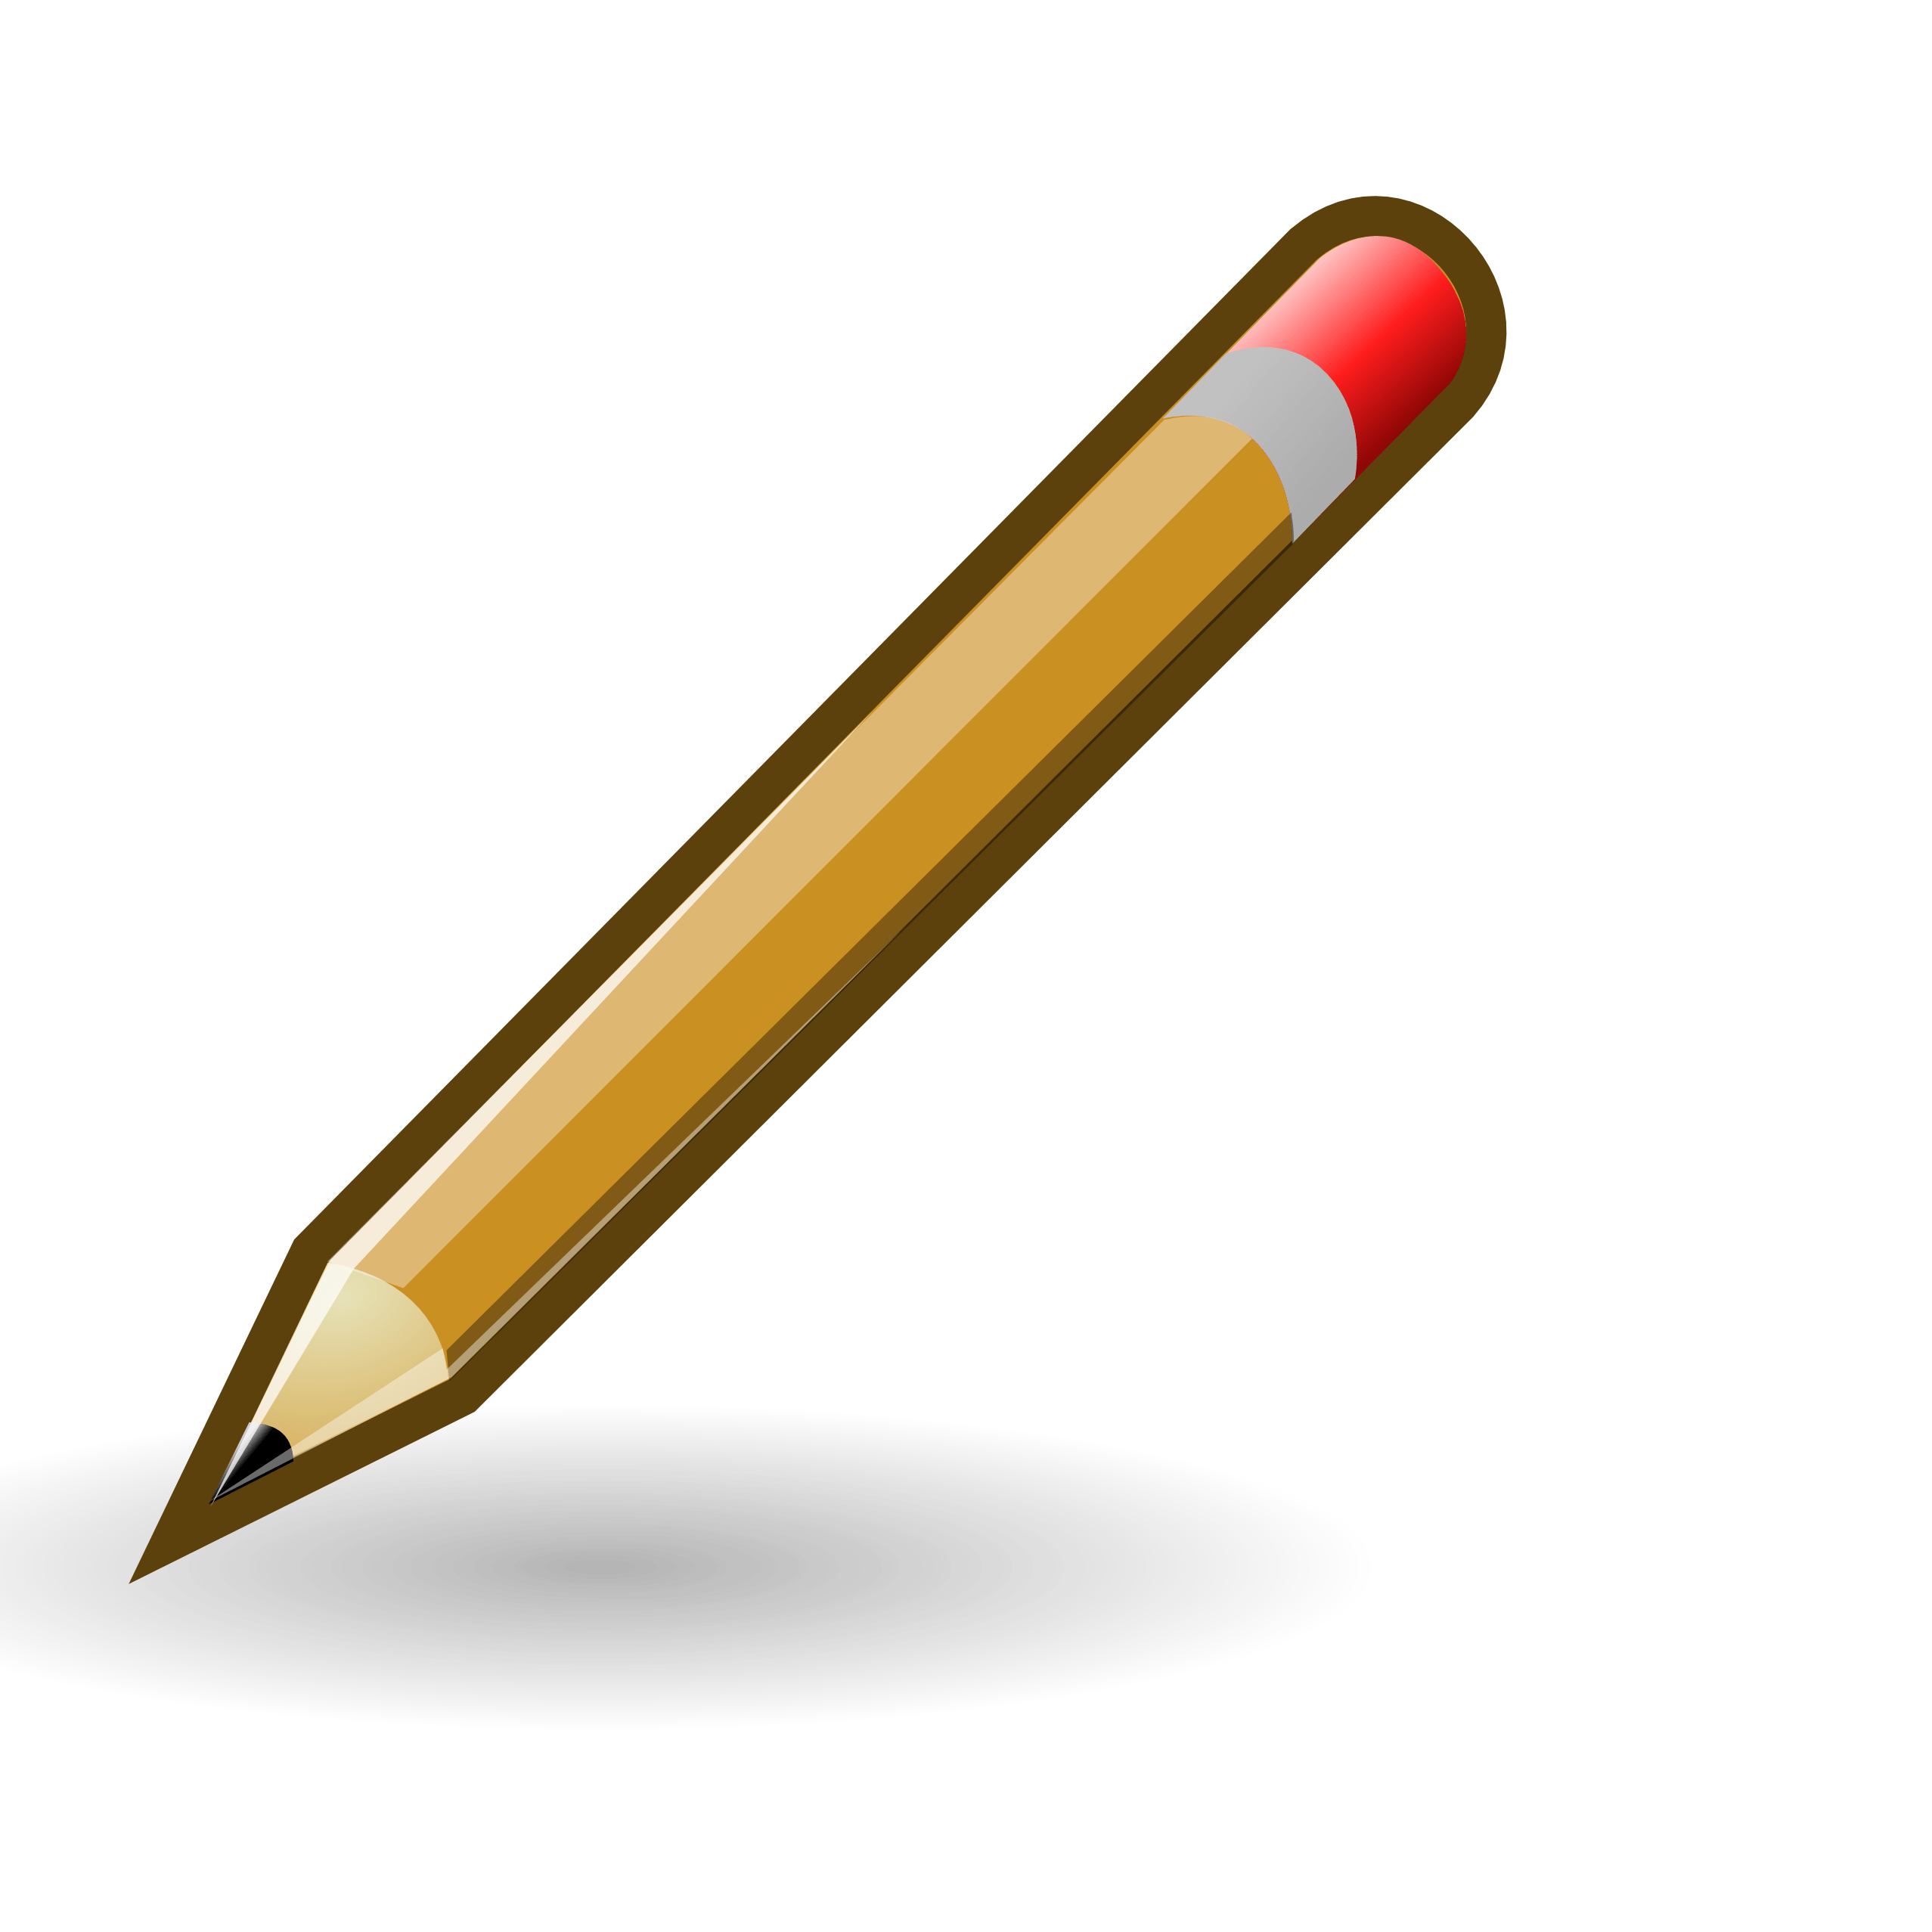 an ode to a user-friendly pencil essay Christian liberty academy book reports how to write an amia paper caregiver samples resume professional thesis statement writers website us stay at home mom goes back to work resume best resume ghostwriters sites ca write my literature assignment.